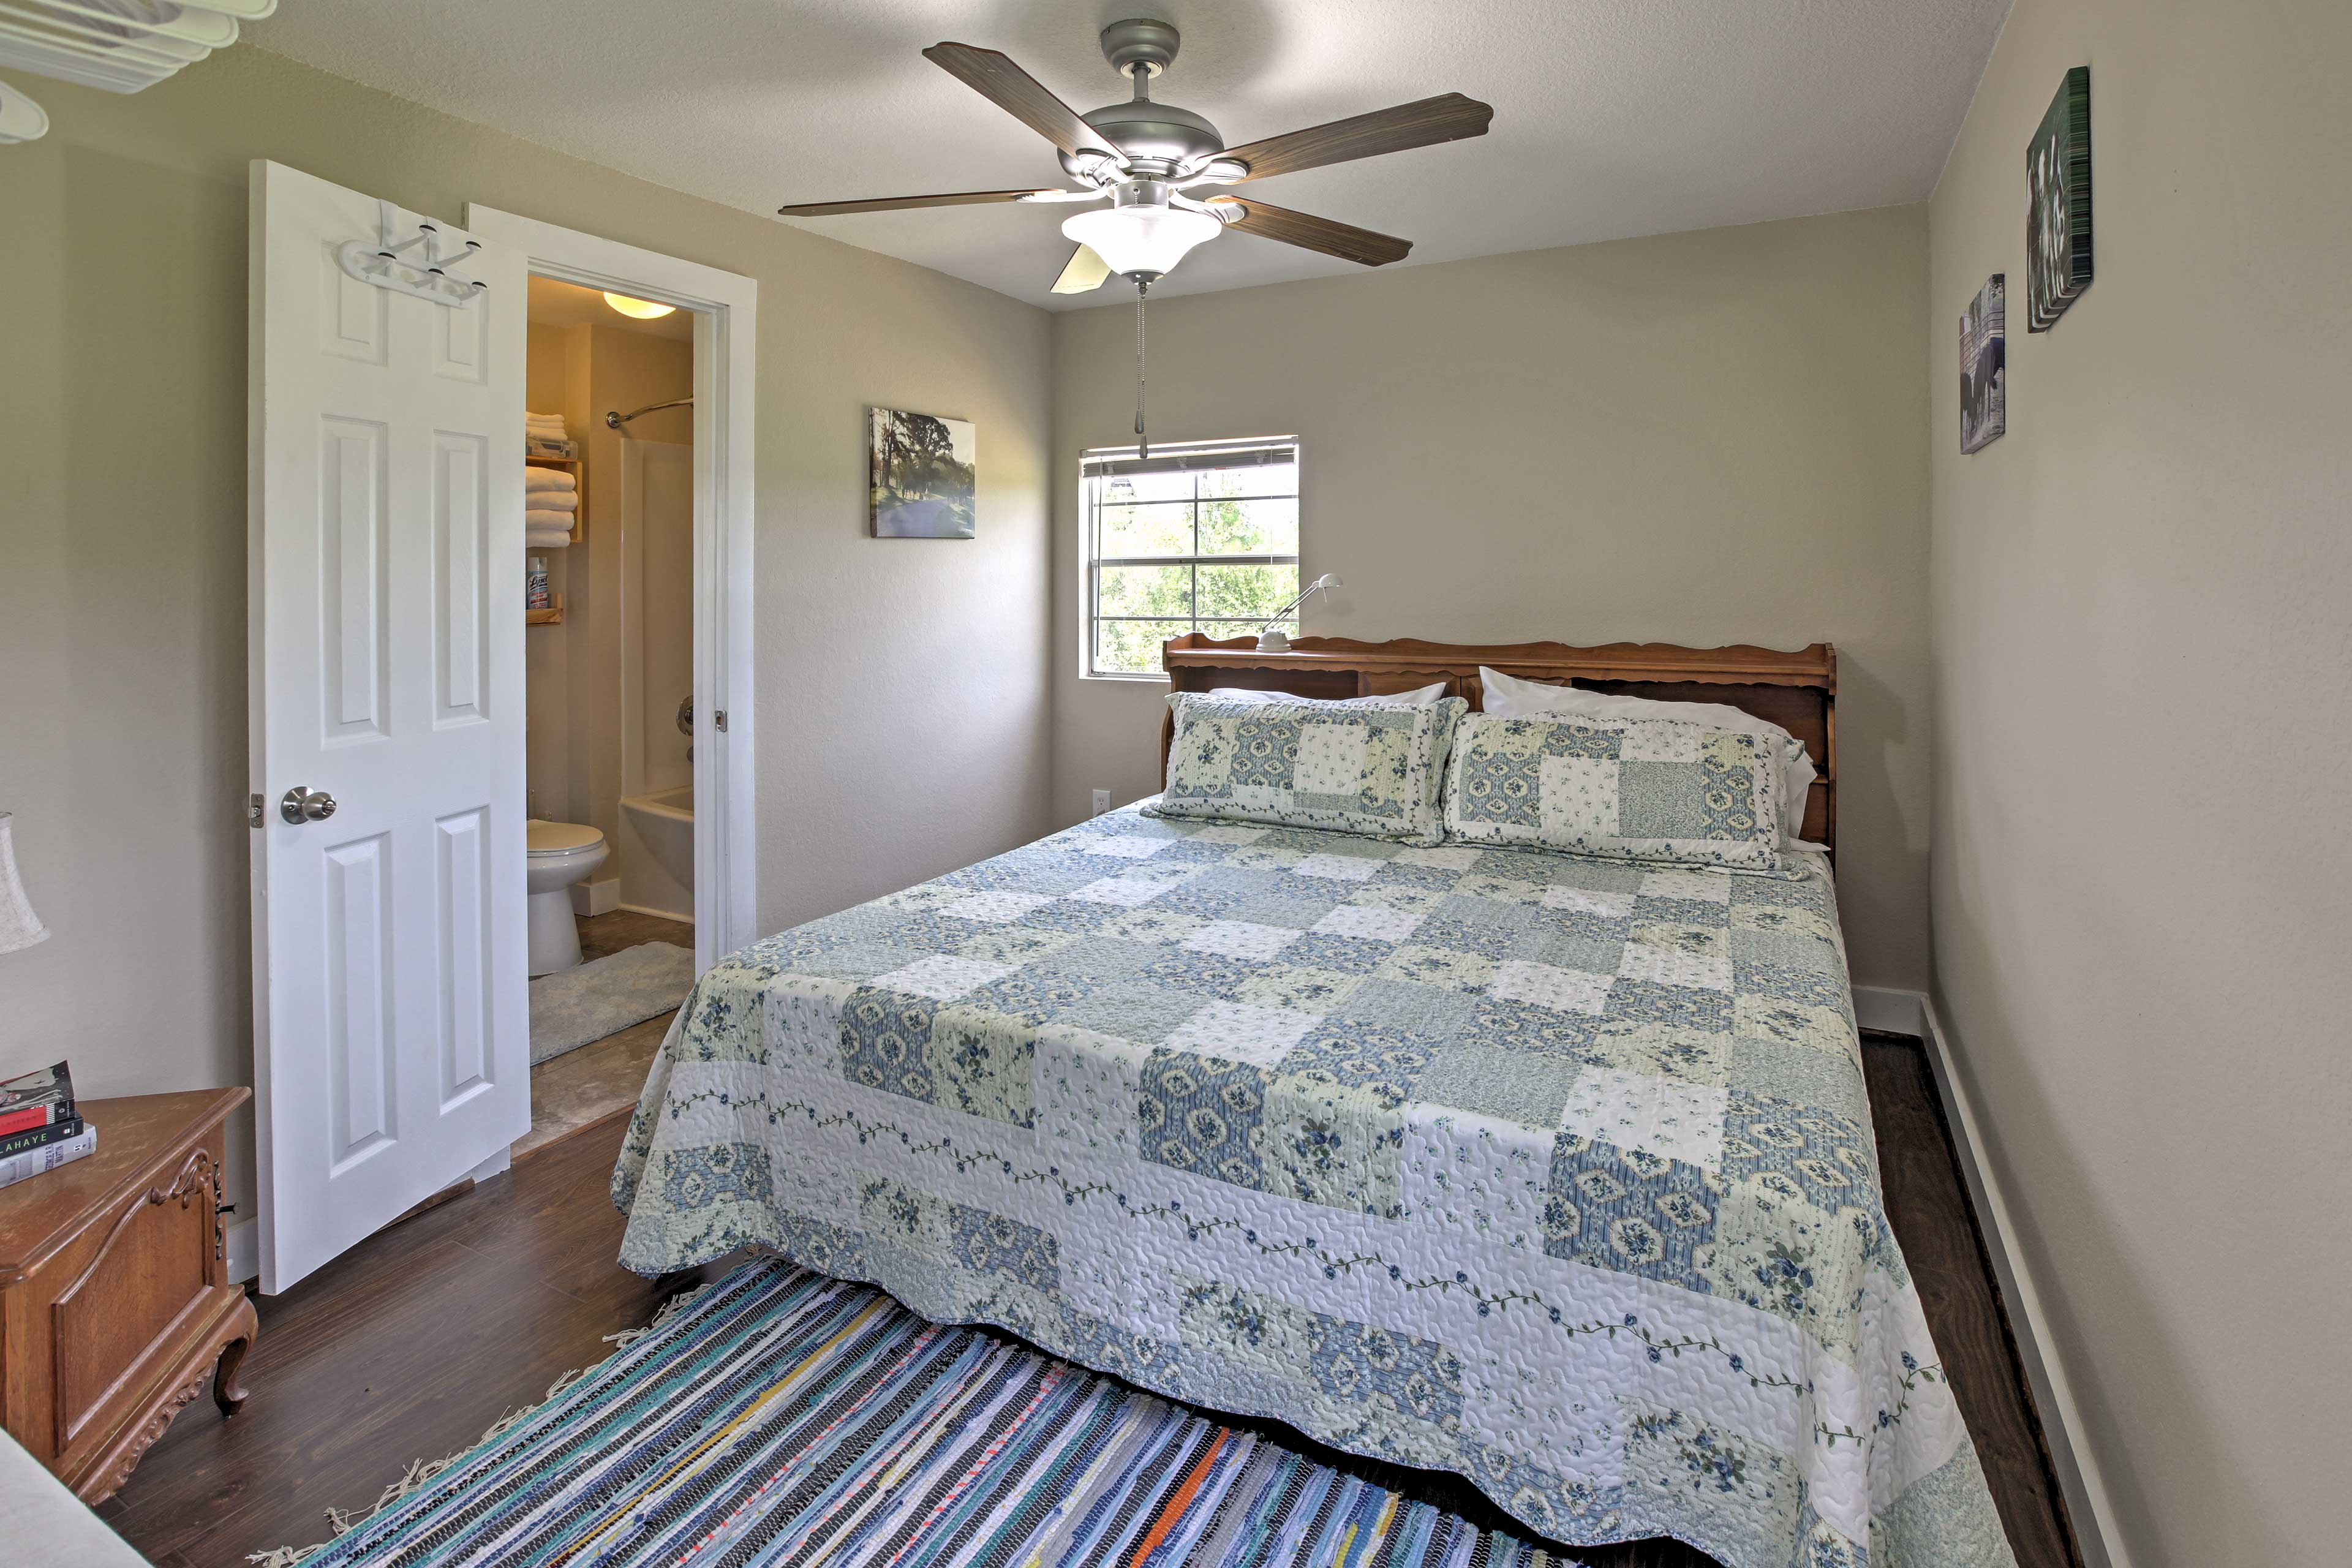 When you're ready for a peaceful night of sleep, head to the home's bedroom.